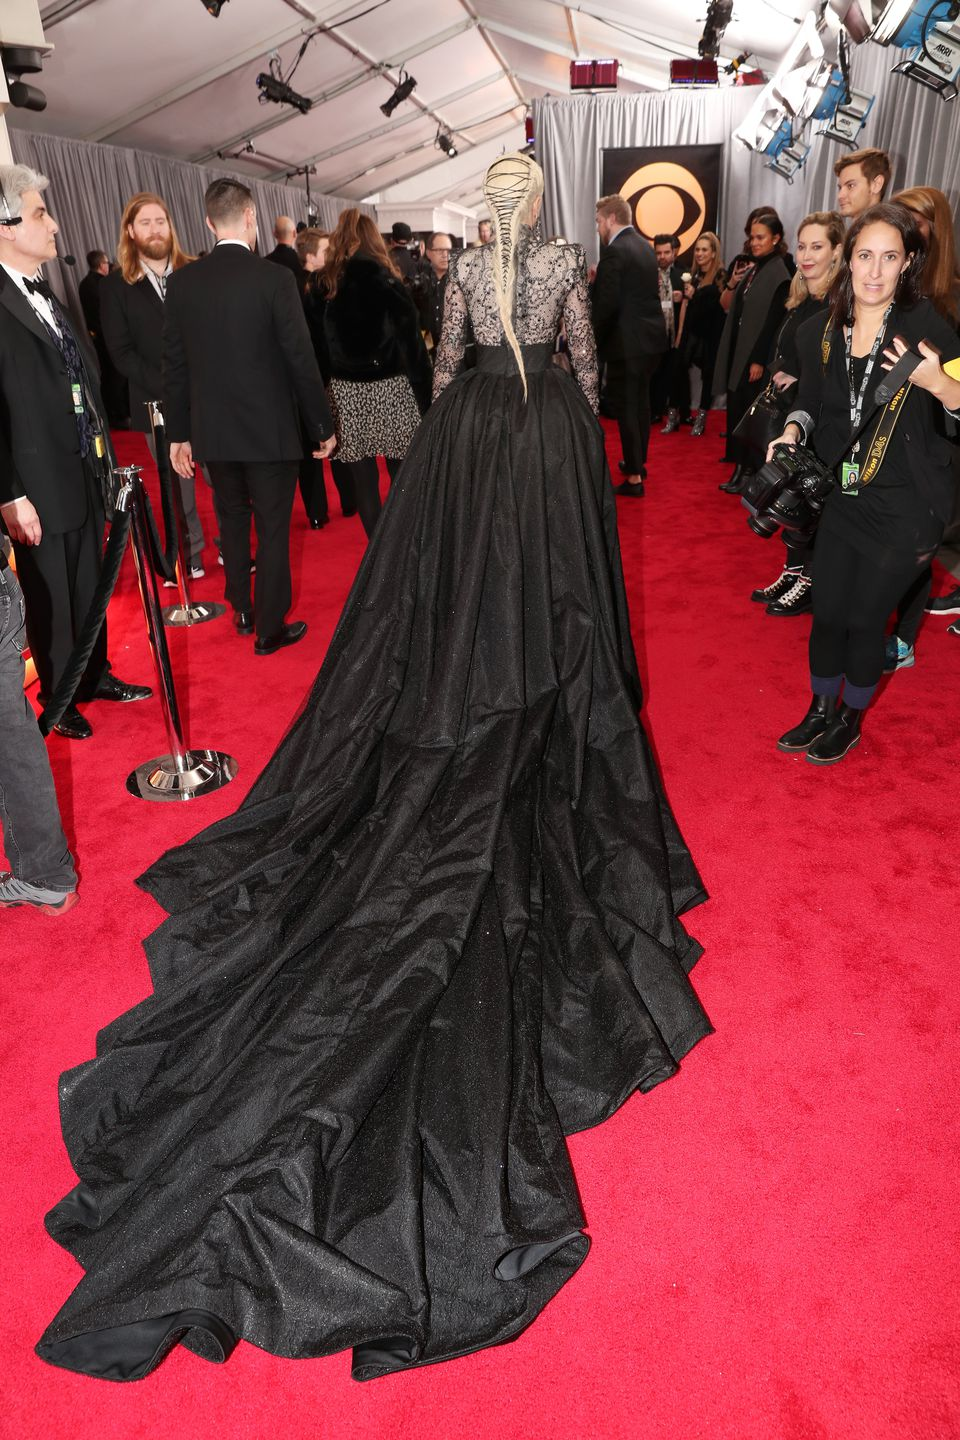 A closer look at the back of Lady Gaga's dress.